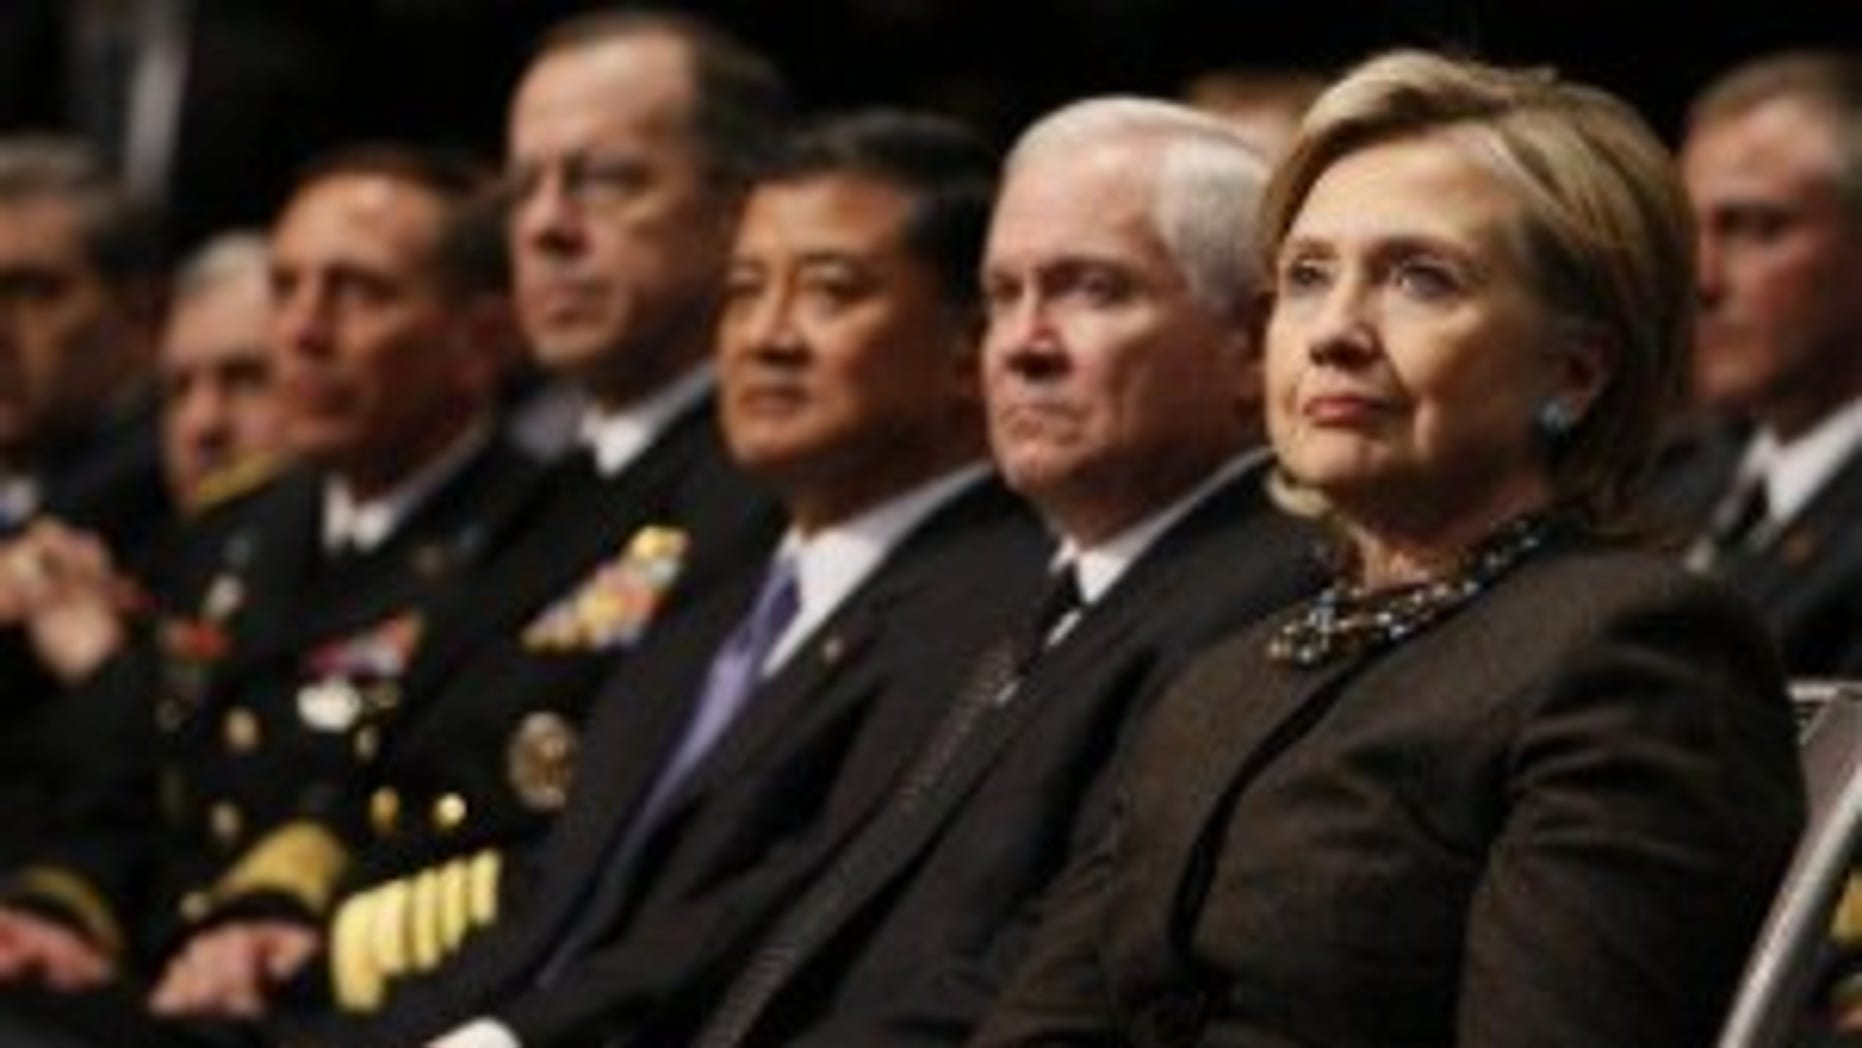 Secretary of State Hillary Clinton, right, and Defense Secretary Gates listen to President Obama's speech at U.S. Military Academy West Point (AP Photo)